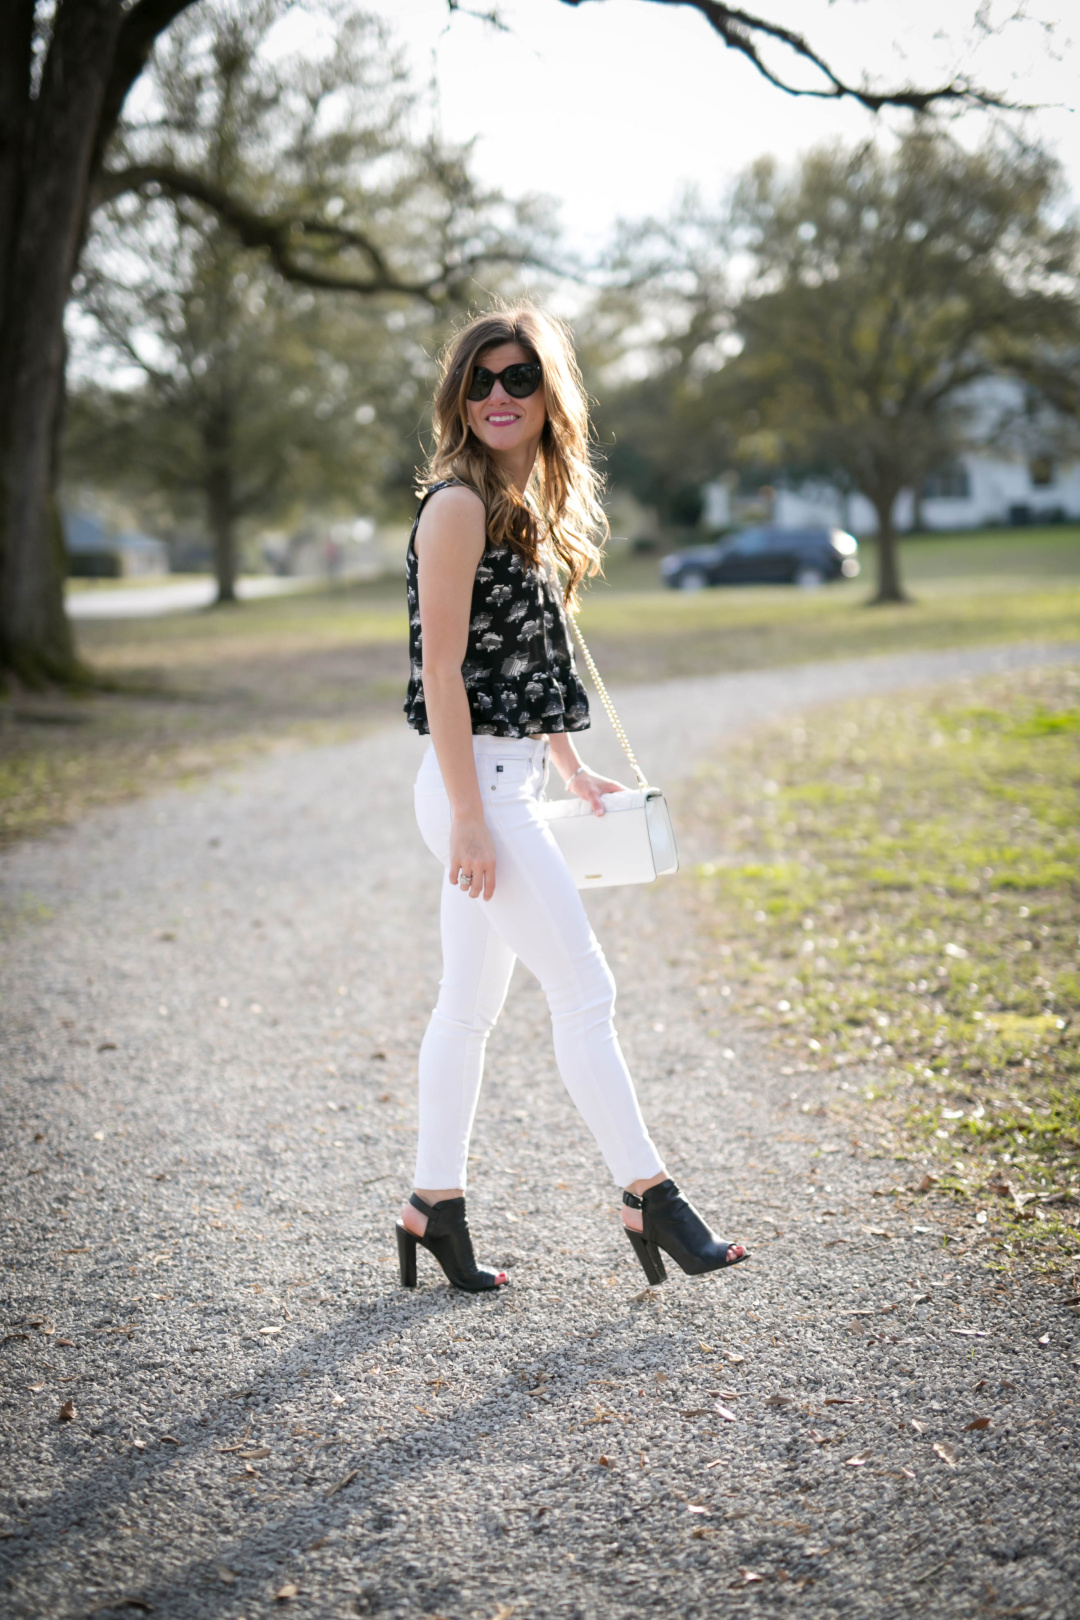 white jeans outfit, rebecca minkoff printed black peplum top, black peep toe sling back booties, fall outfit idea